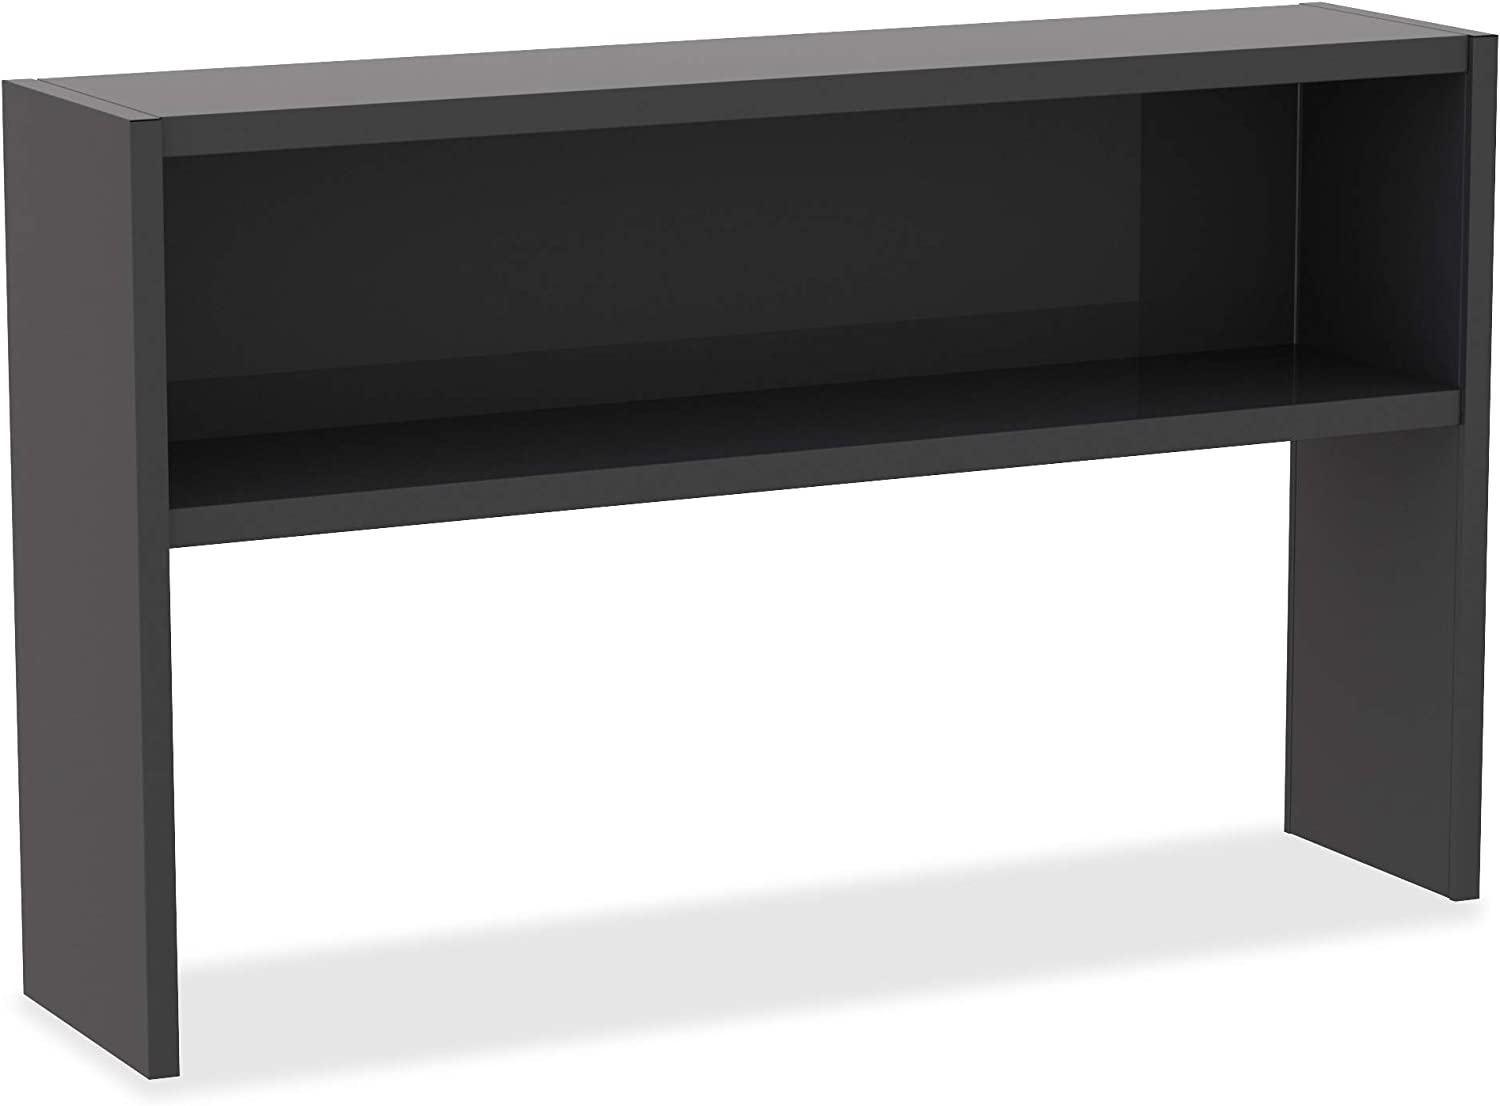 Lorell Charcoal Steel Desk favorite Japan's largest assortment Stack Hutch Series Gray